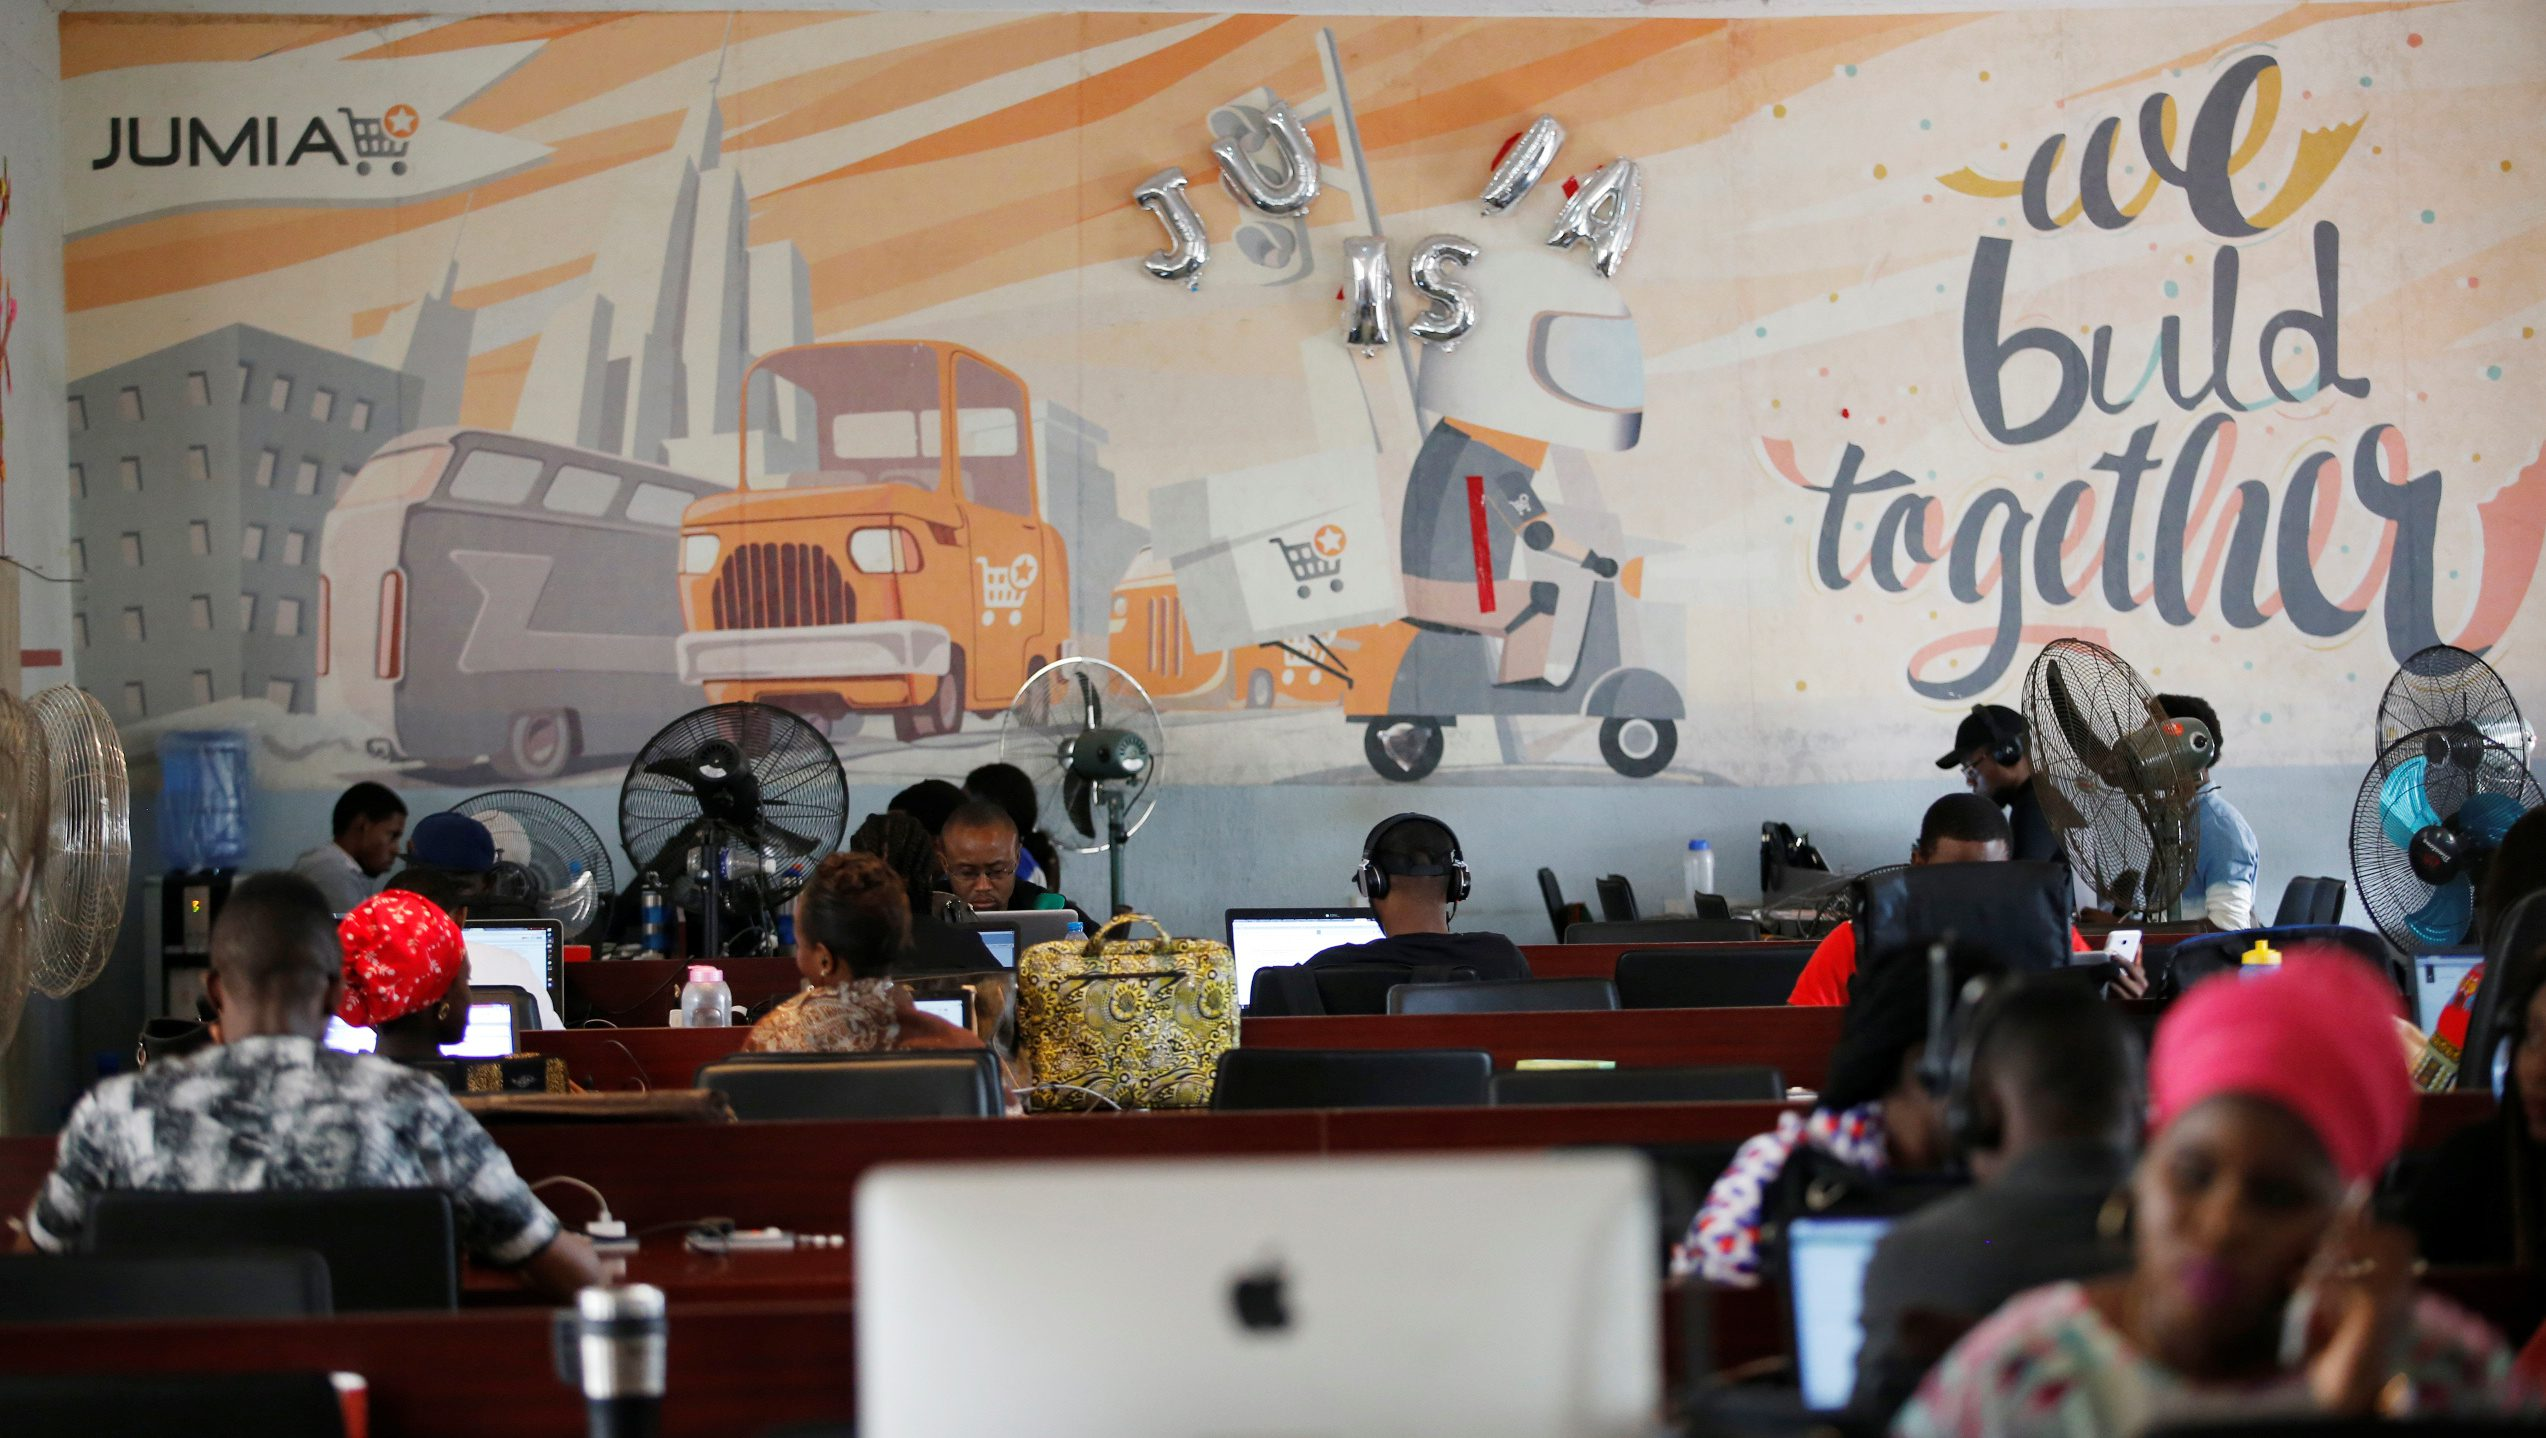 People work on computers at the online store Jumia in Ikeja district, in Nigeria's commercial capital Lagos June 10, 2016.